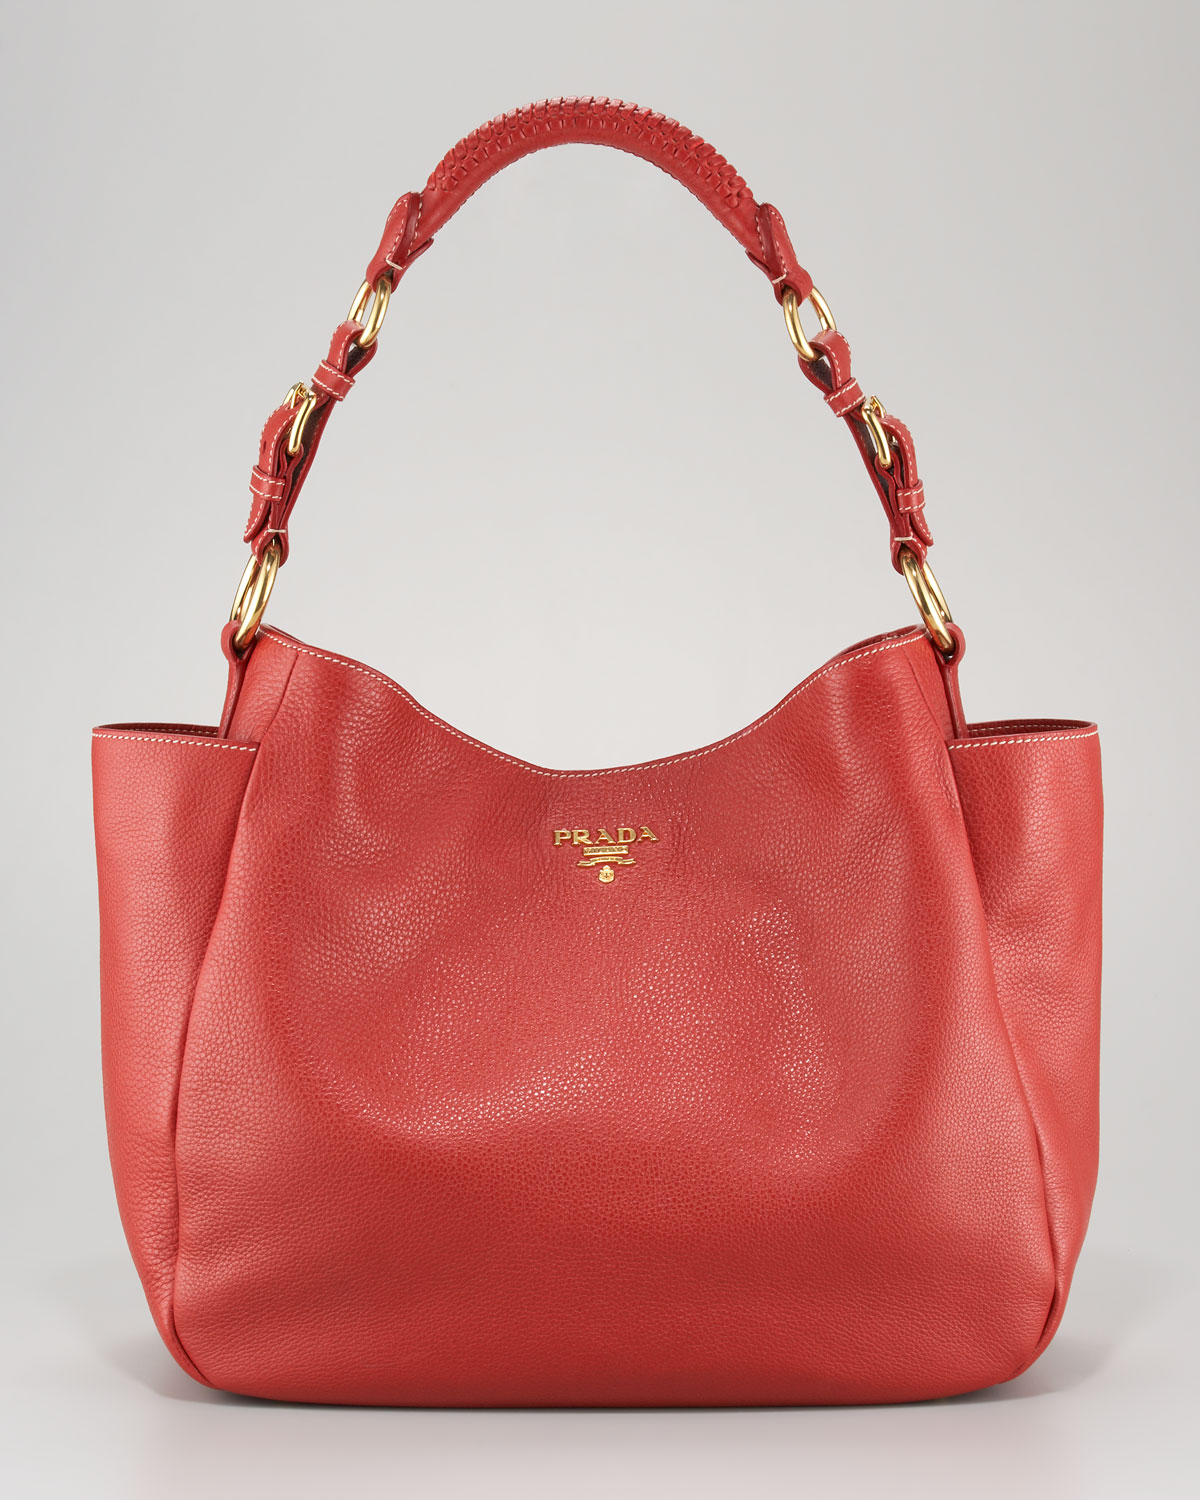 Prada Vitello Daino Pocket Hobo Bag in Red (rosso) | Lyst